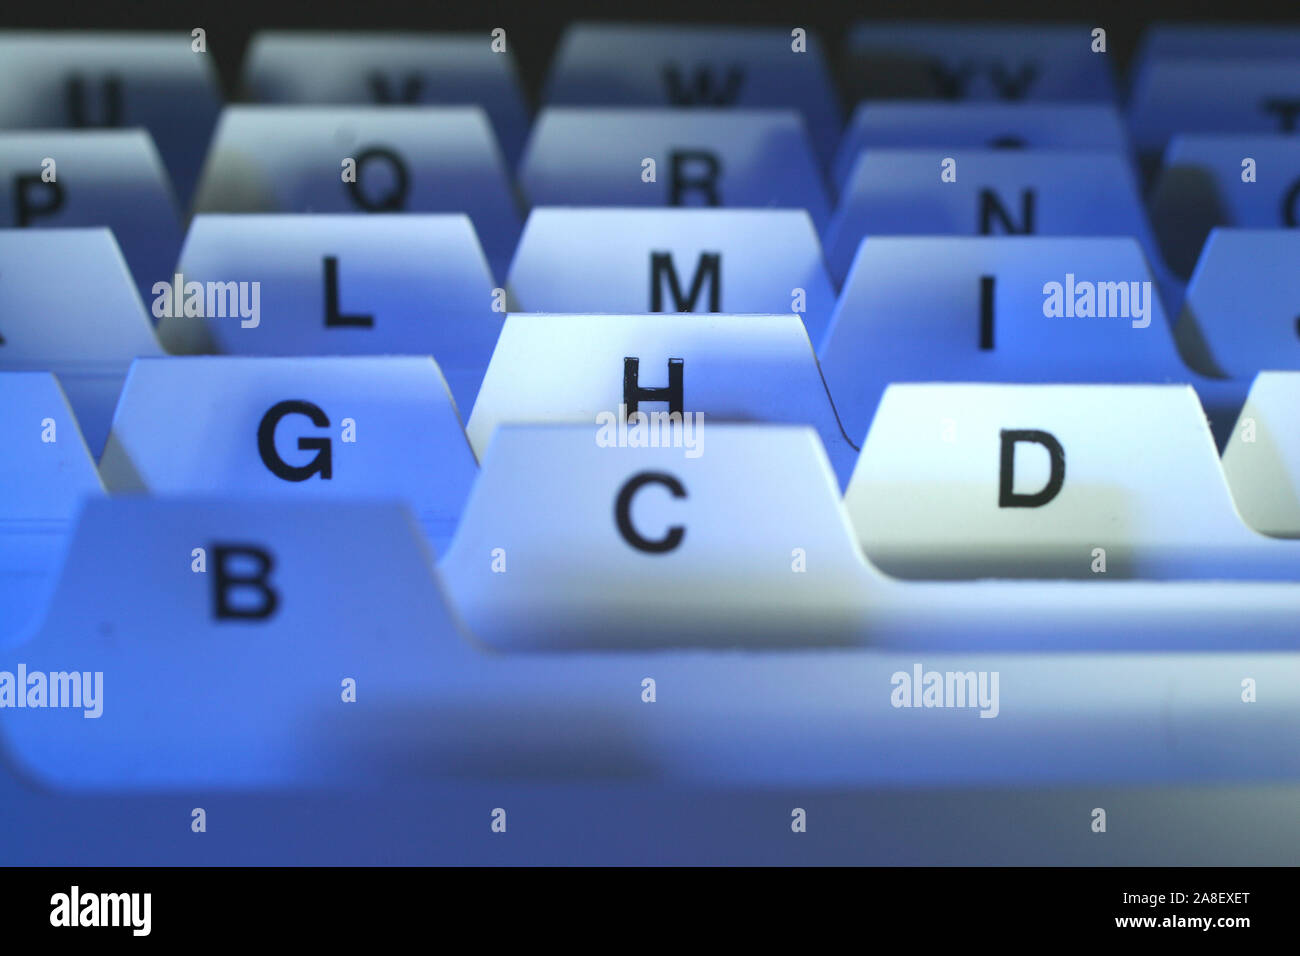 ABC-Register, Registerkarten, Stock Photo